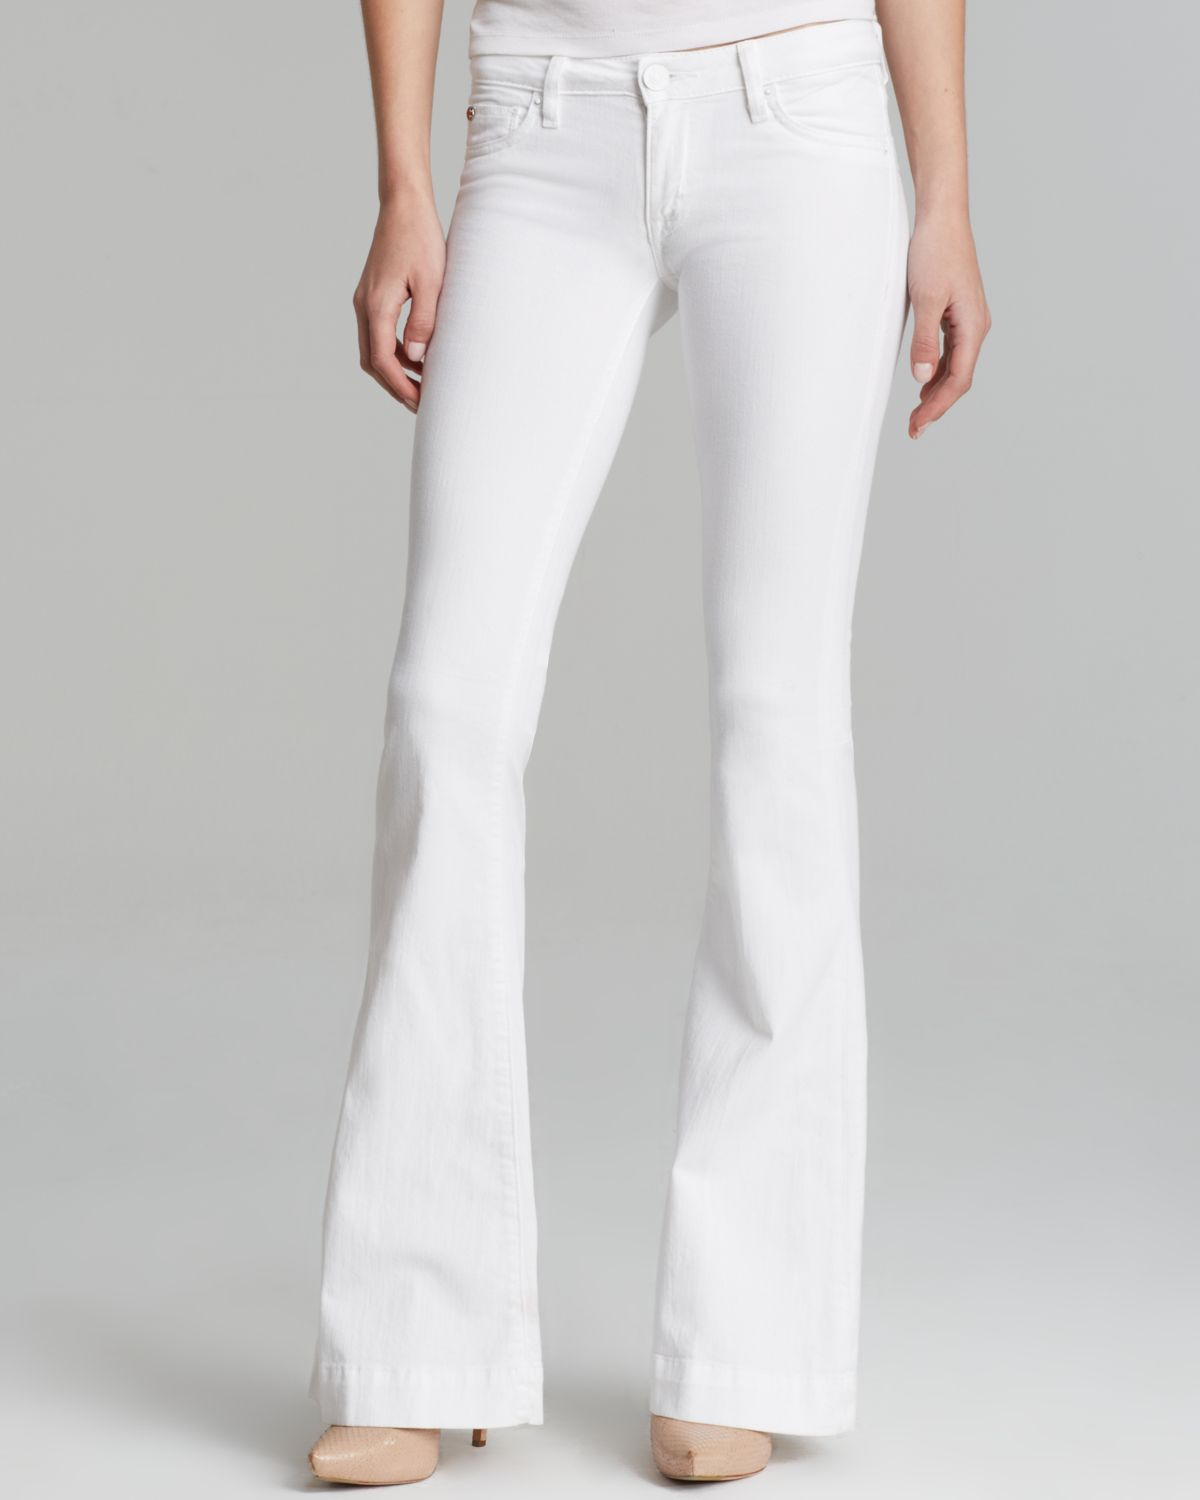 Find a great selection of flare and wide leg jeans for women at 0549sahibi.tk Shop by rise, wash, waist size, color and more. Free shipping & returns.